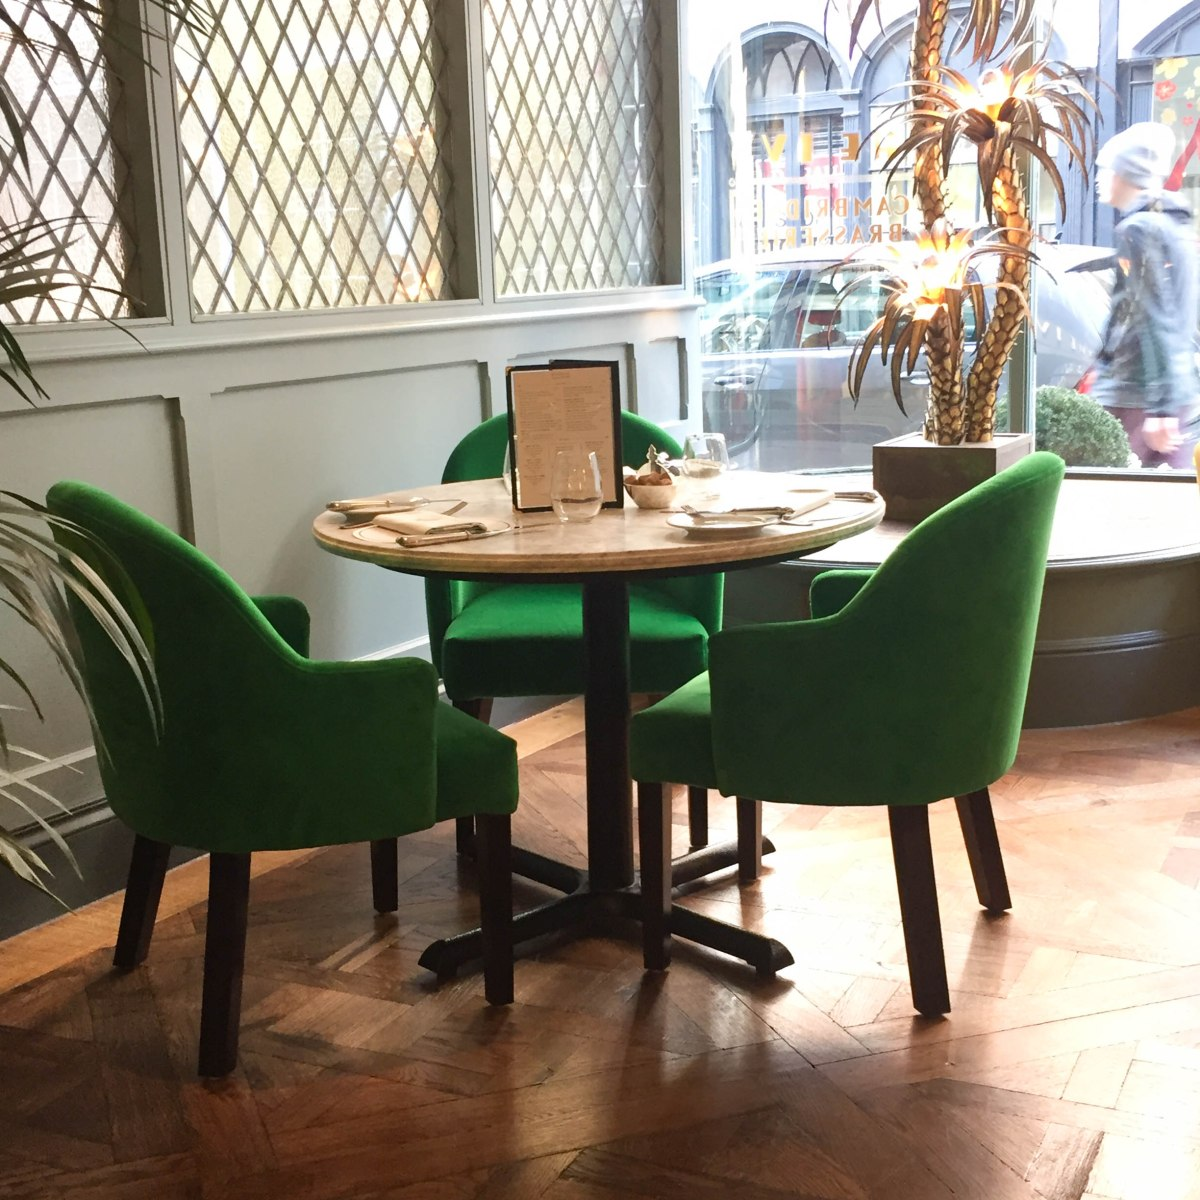 A photograph of three chairs of classic Ivy green around a table close to the window